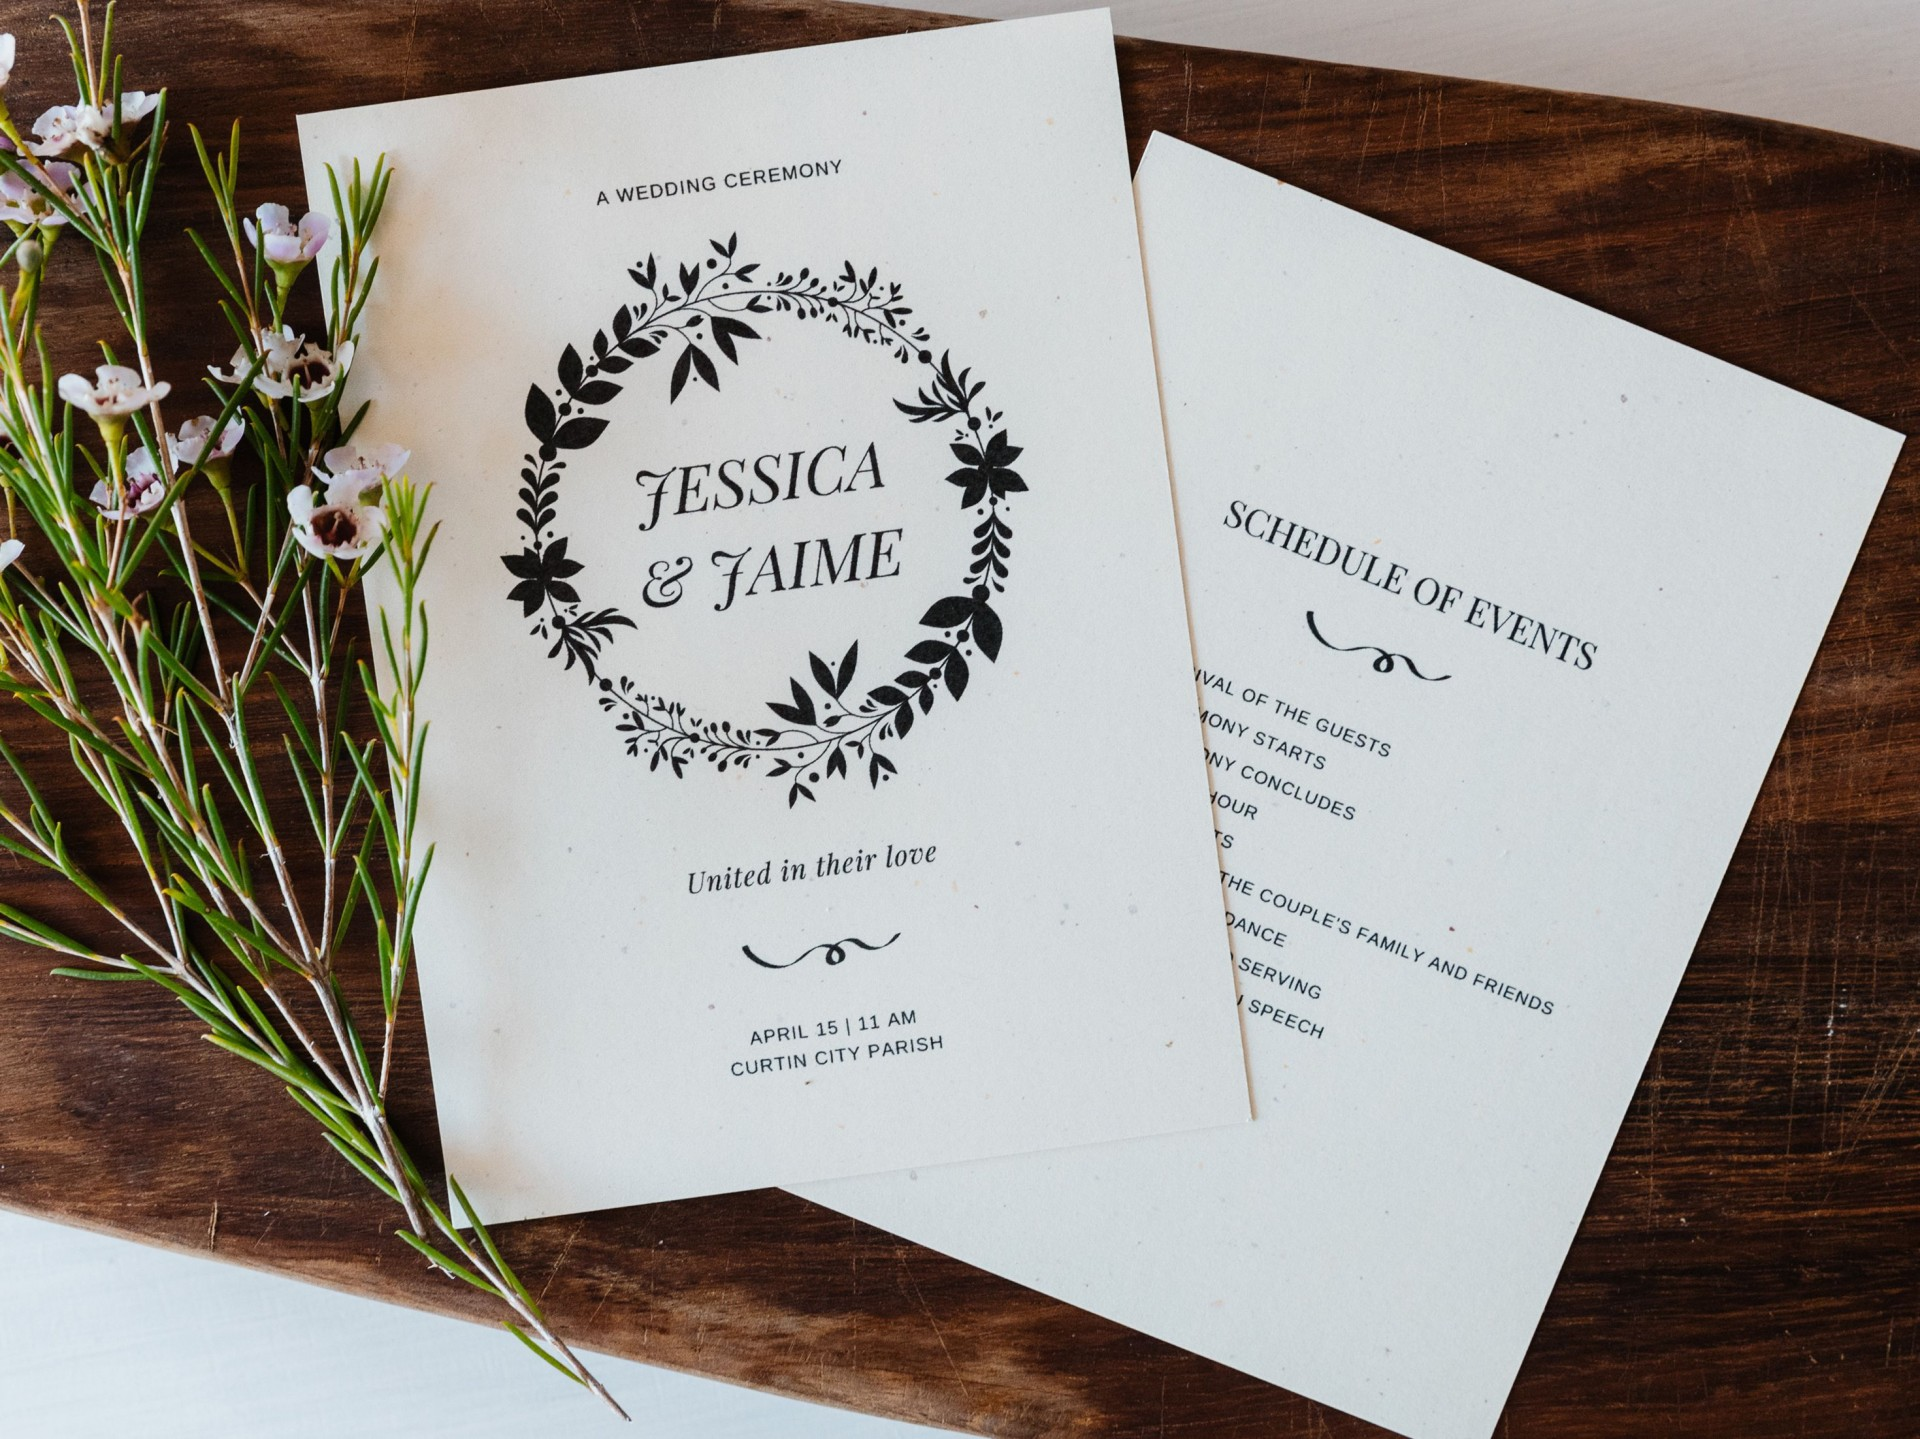 005 Imposing Free Wedding Program Template For Word Example  Download Fan Microsoft Downloadable Reception1920